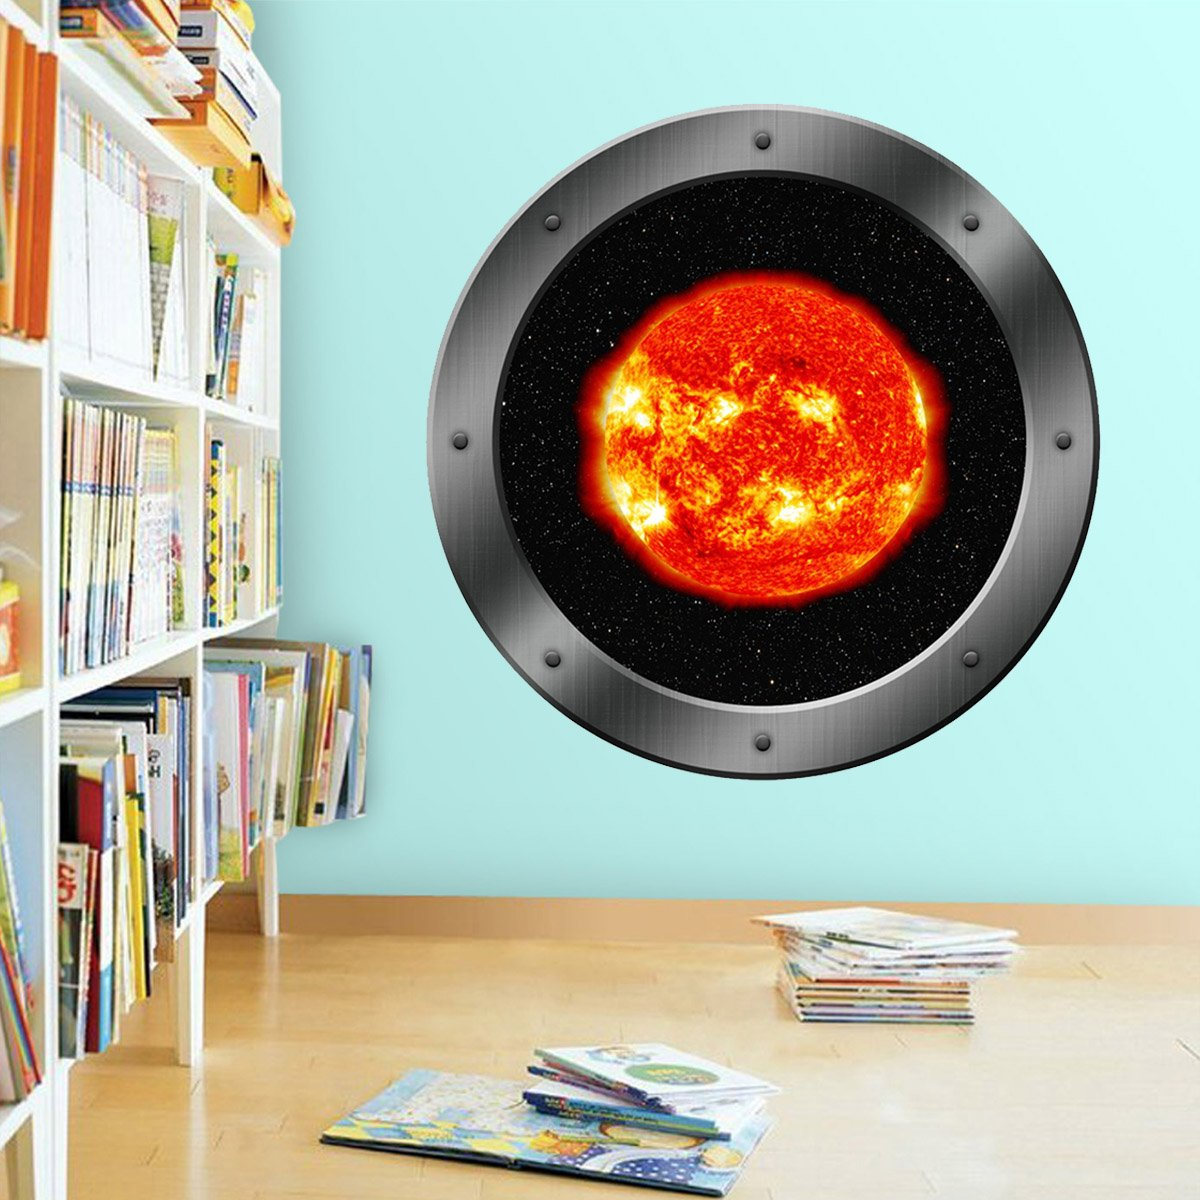 Sun Window Clings, Space Star Wall Decal - Solar System For Kids Room - VWAQ Vinyl Wall Art Quotes and Prints